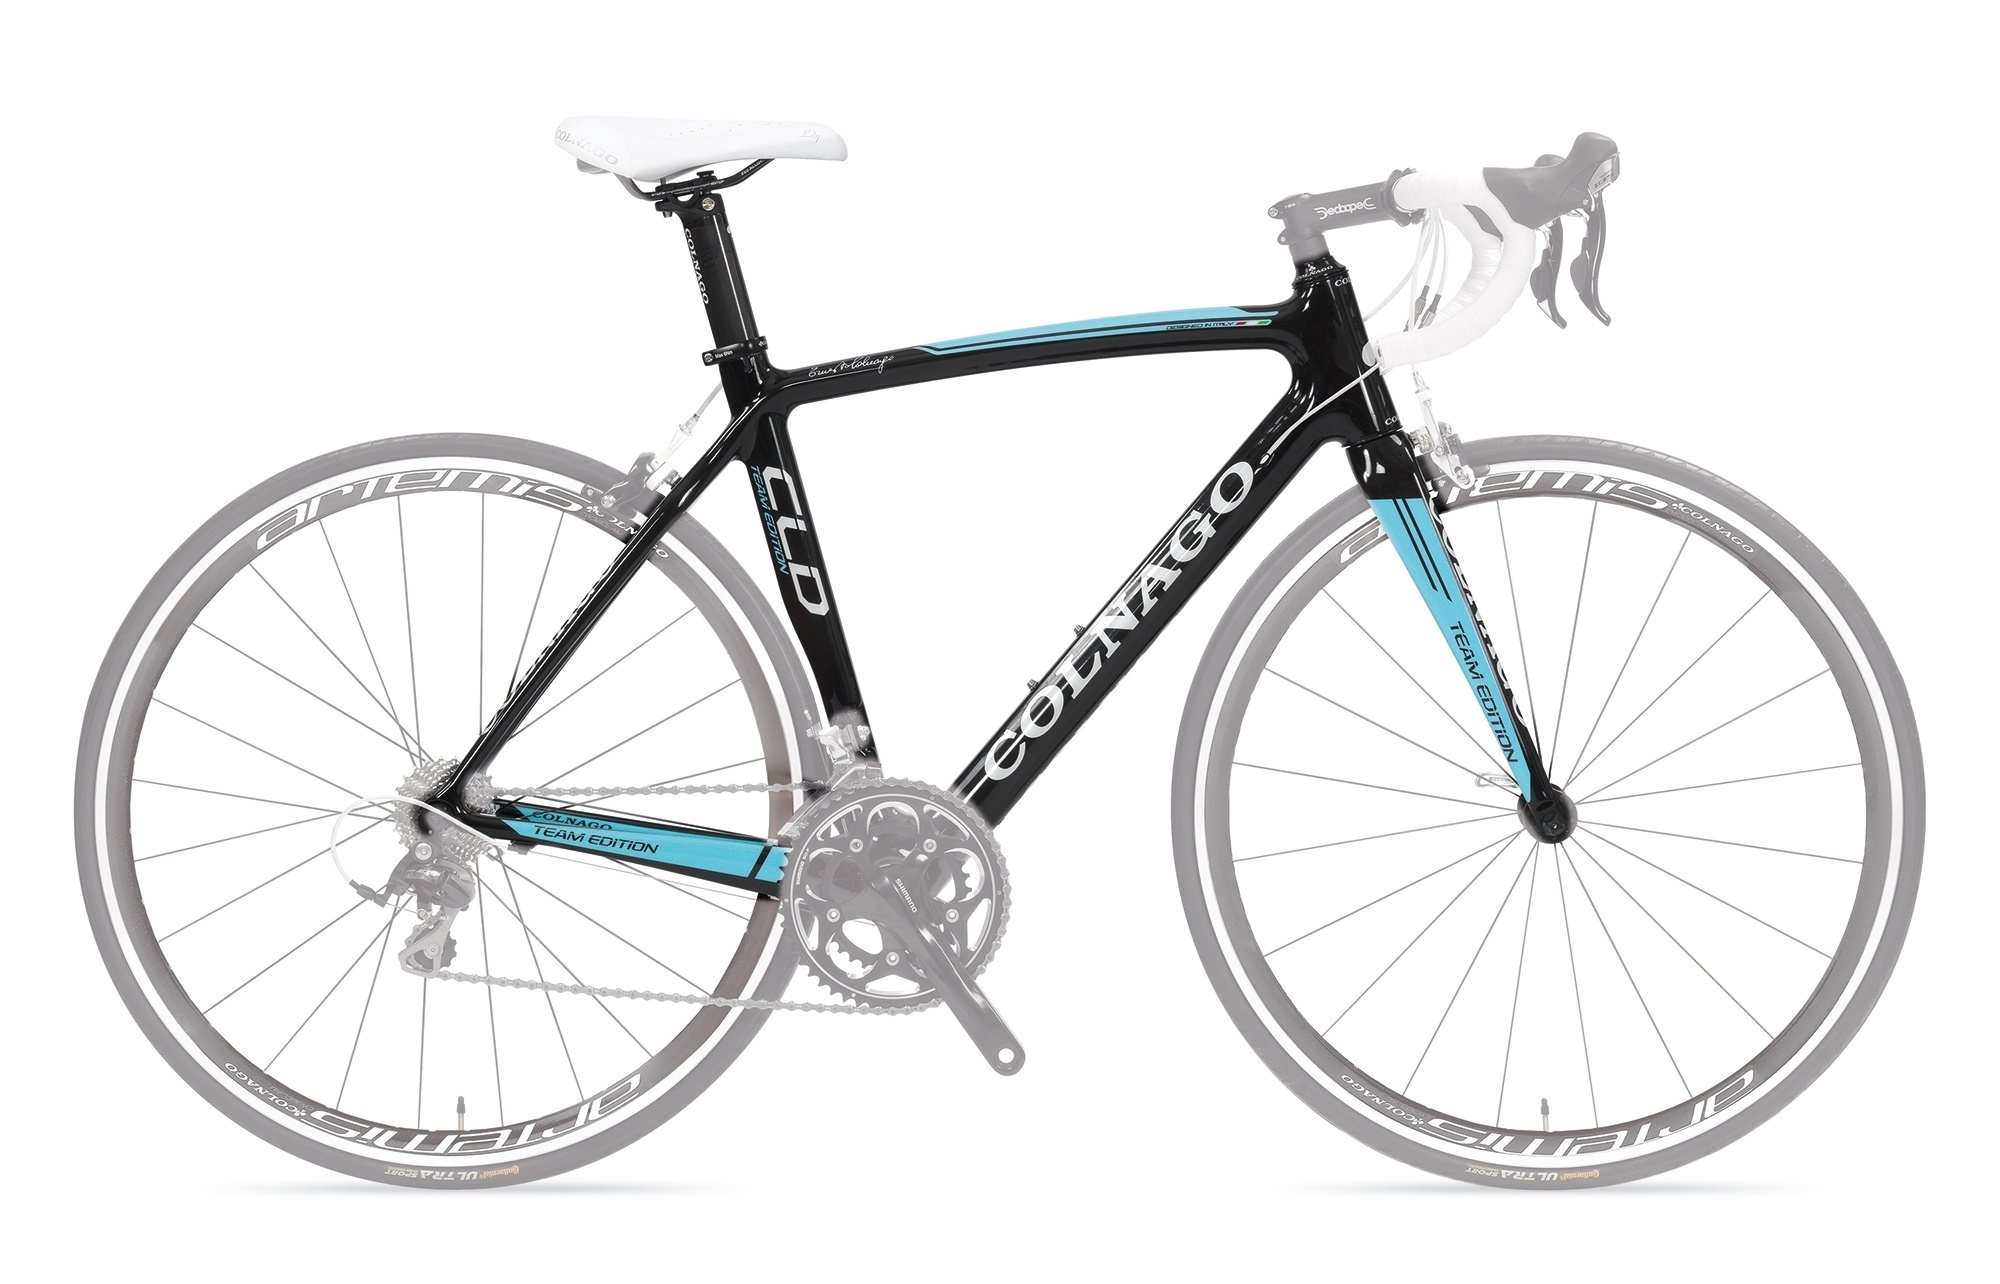 2014 Colnago Cld Ultegra Bike R A Cycles